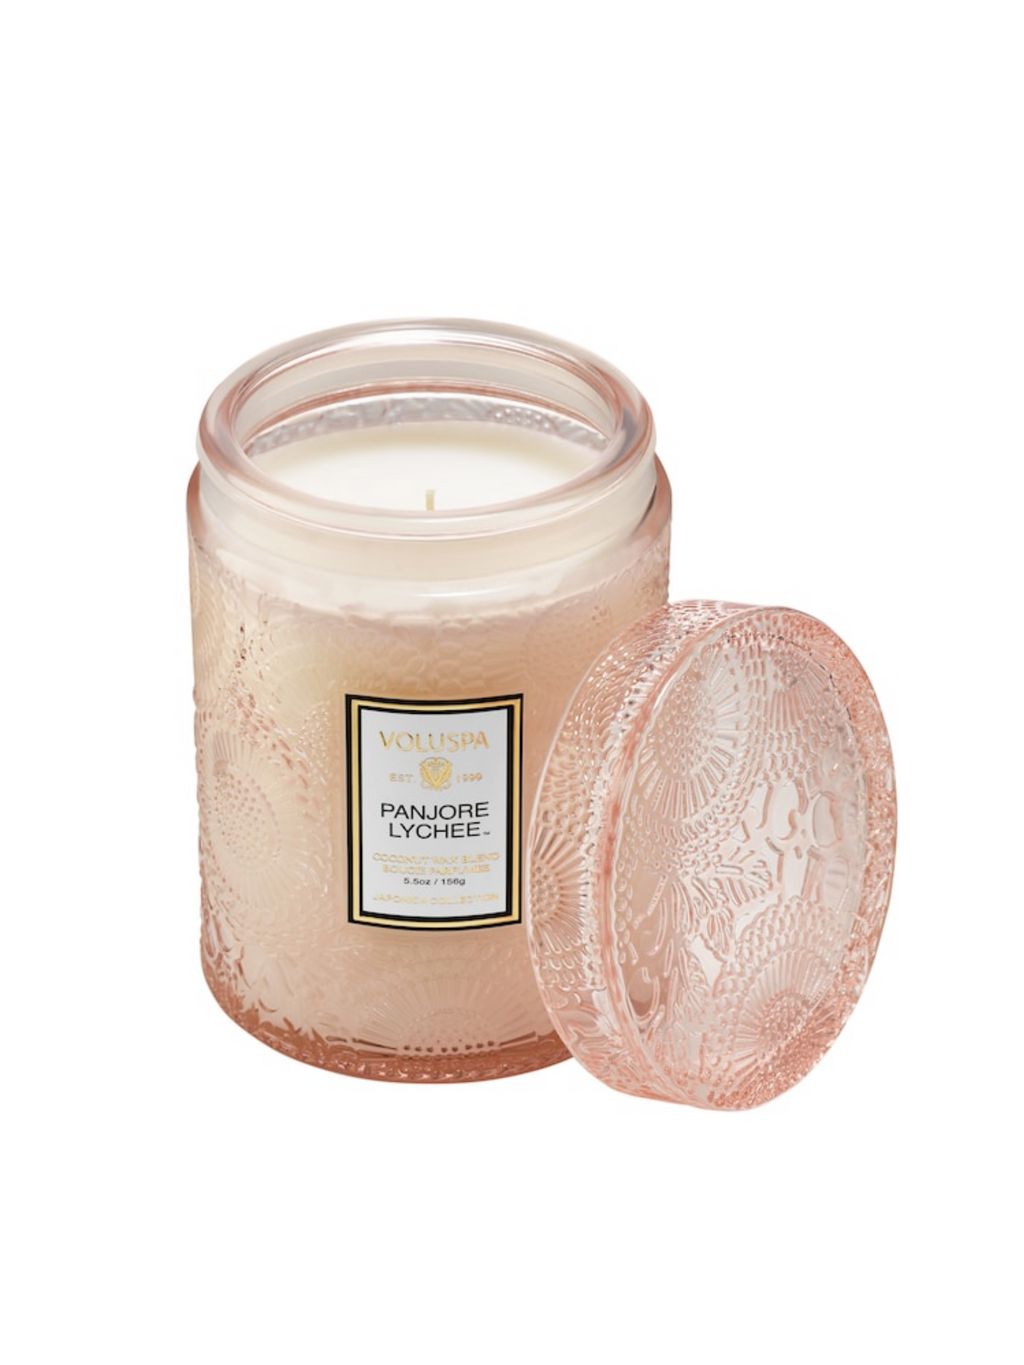 Panjoree Lychee Candle - 5.5oz